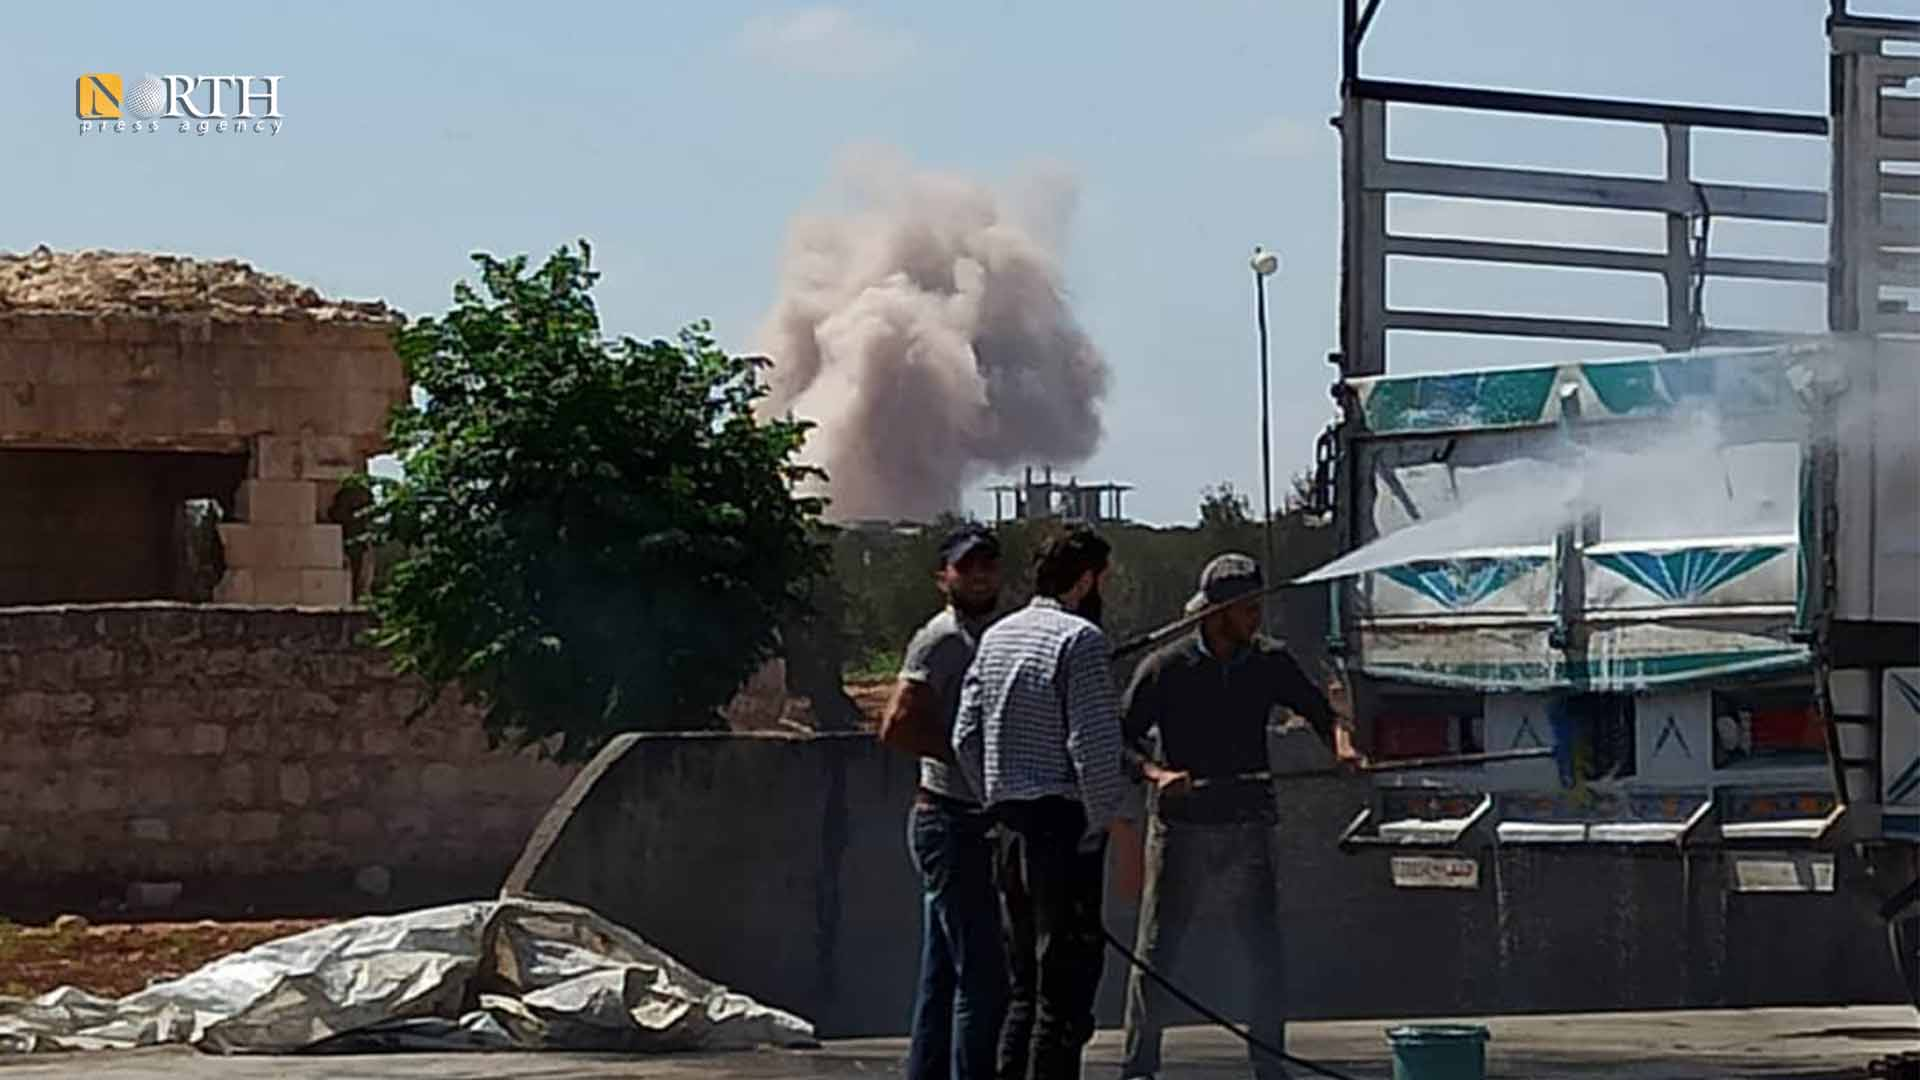 Former Russian air strikes on the outskirts of Ma'arrat Misrin town in the countryside of Idlib – North Press